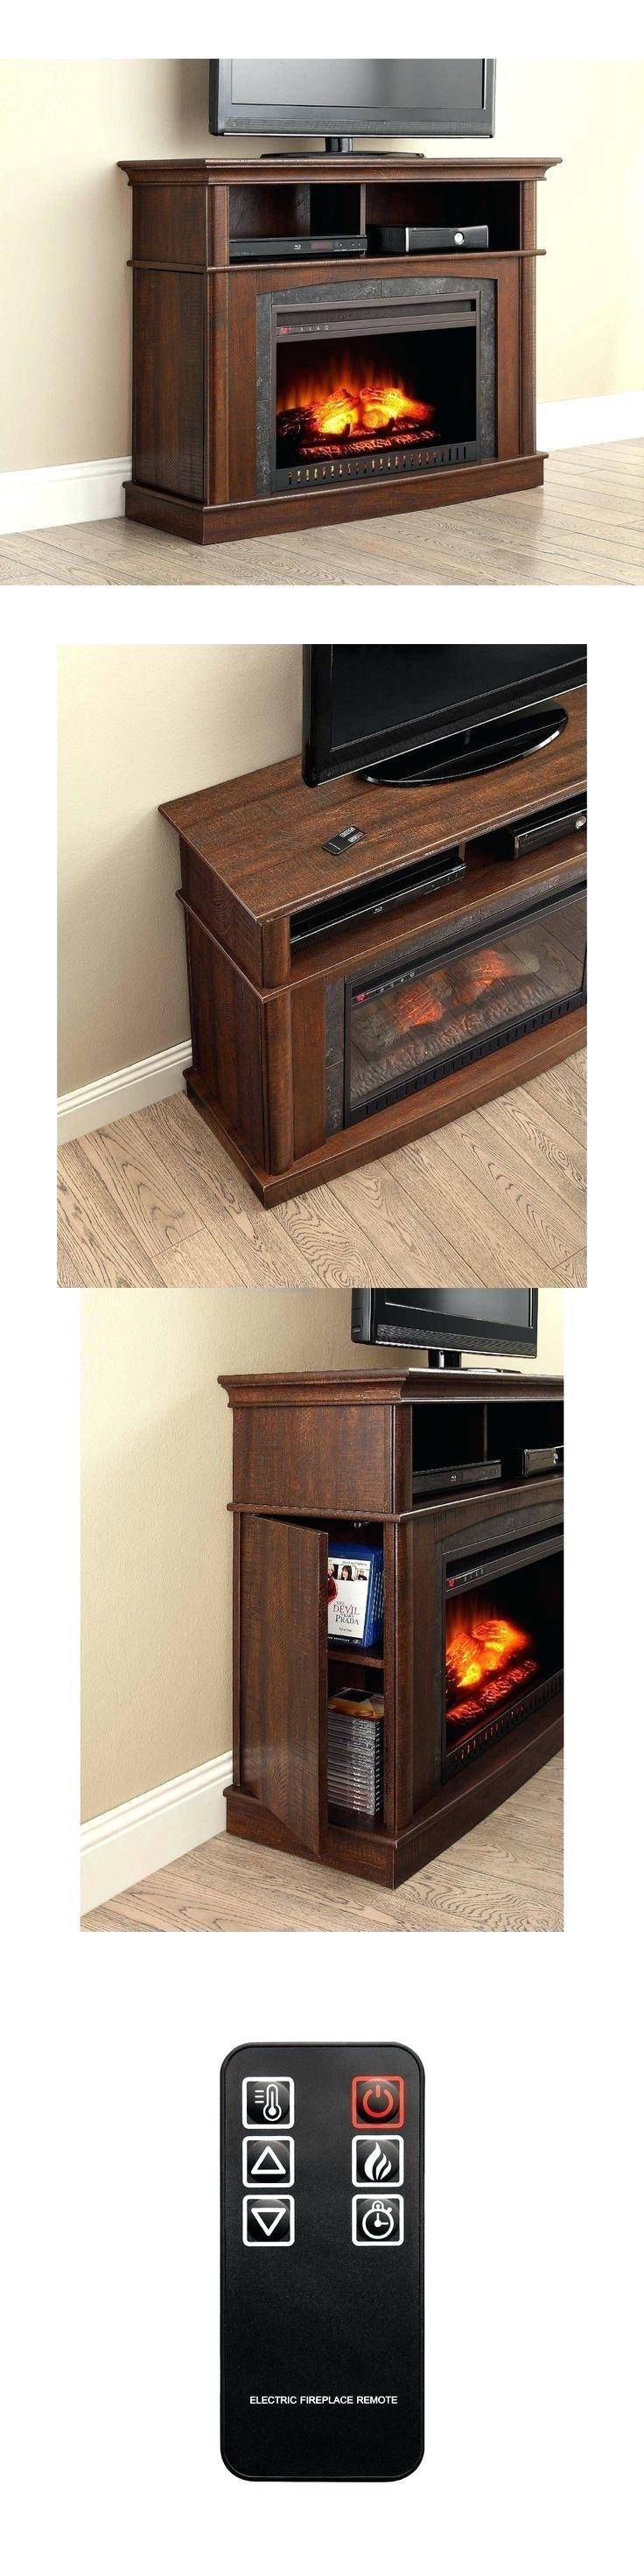 Tv Stand : Cozy Goodmans 20 Inch Tv Combo Vhs Tv Stand 40A 86 inside Emerson Tv Stands (Image 12 of 15)